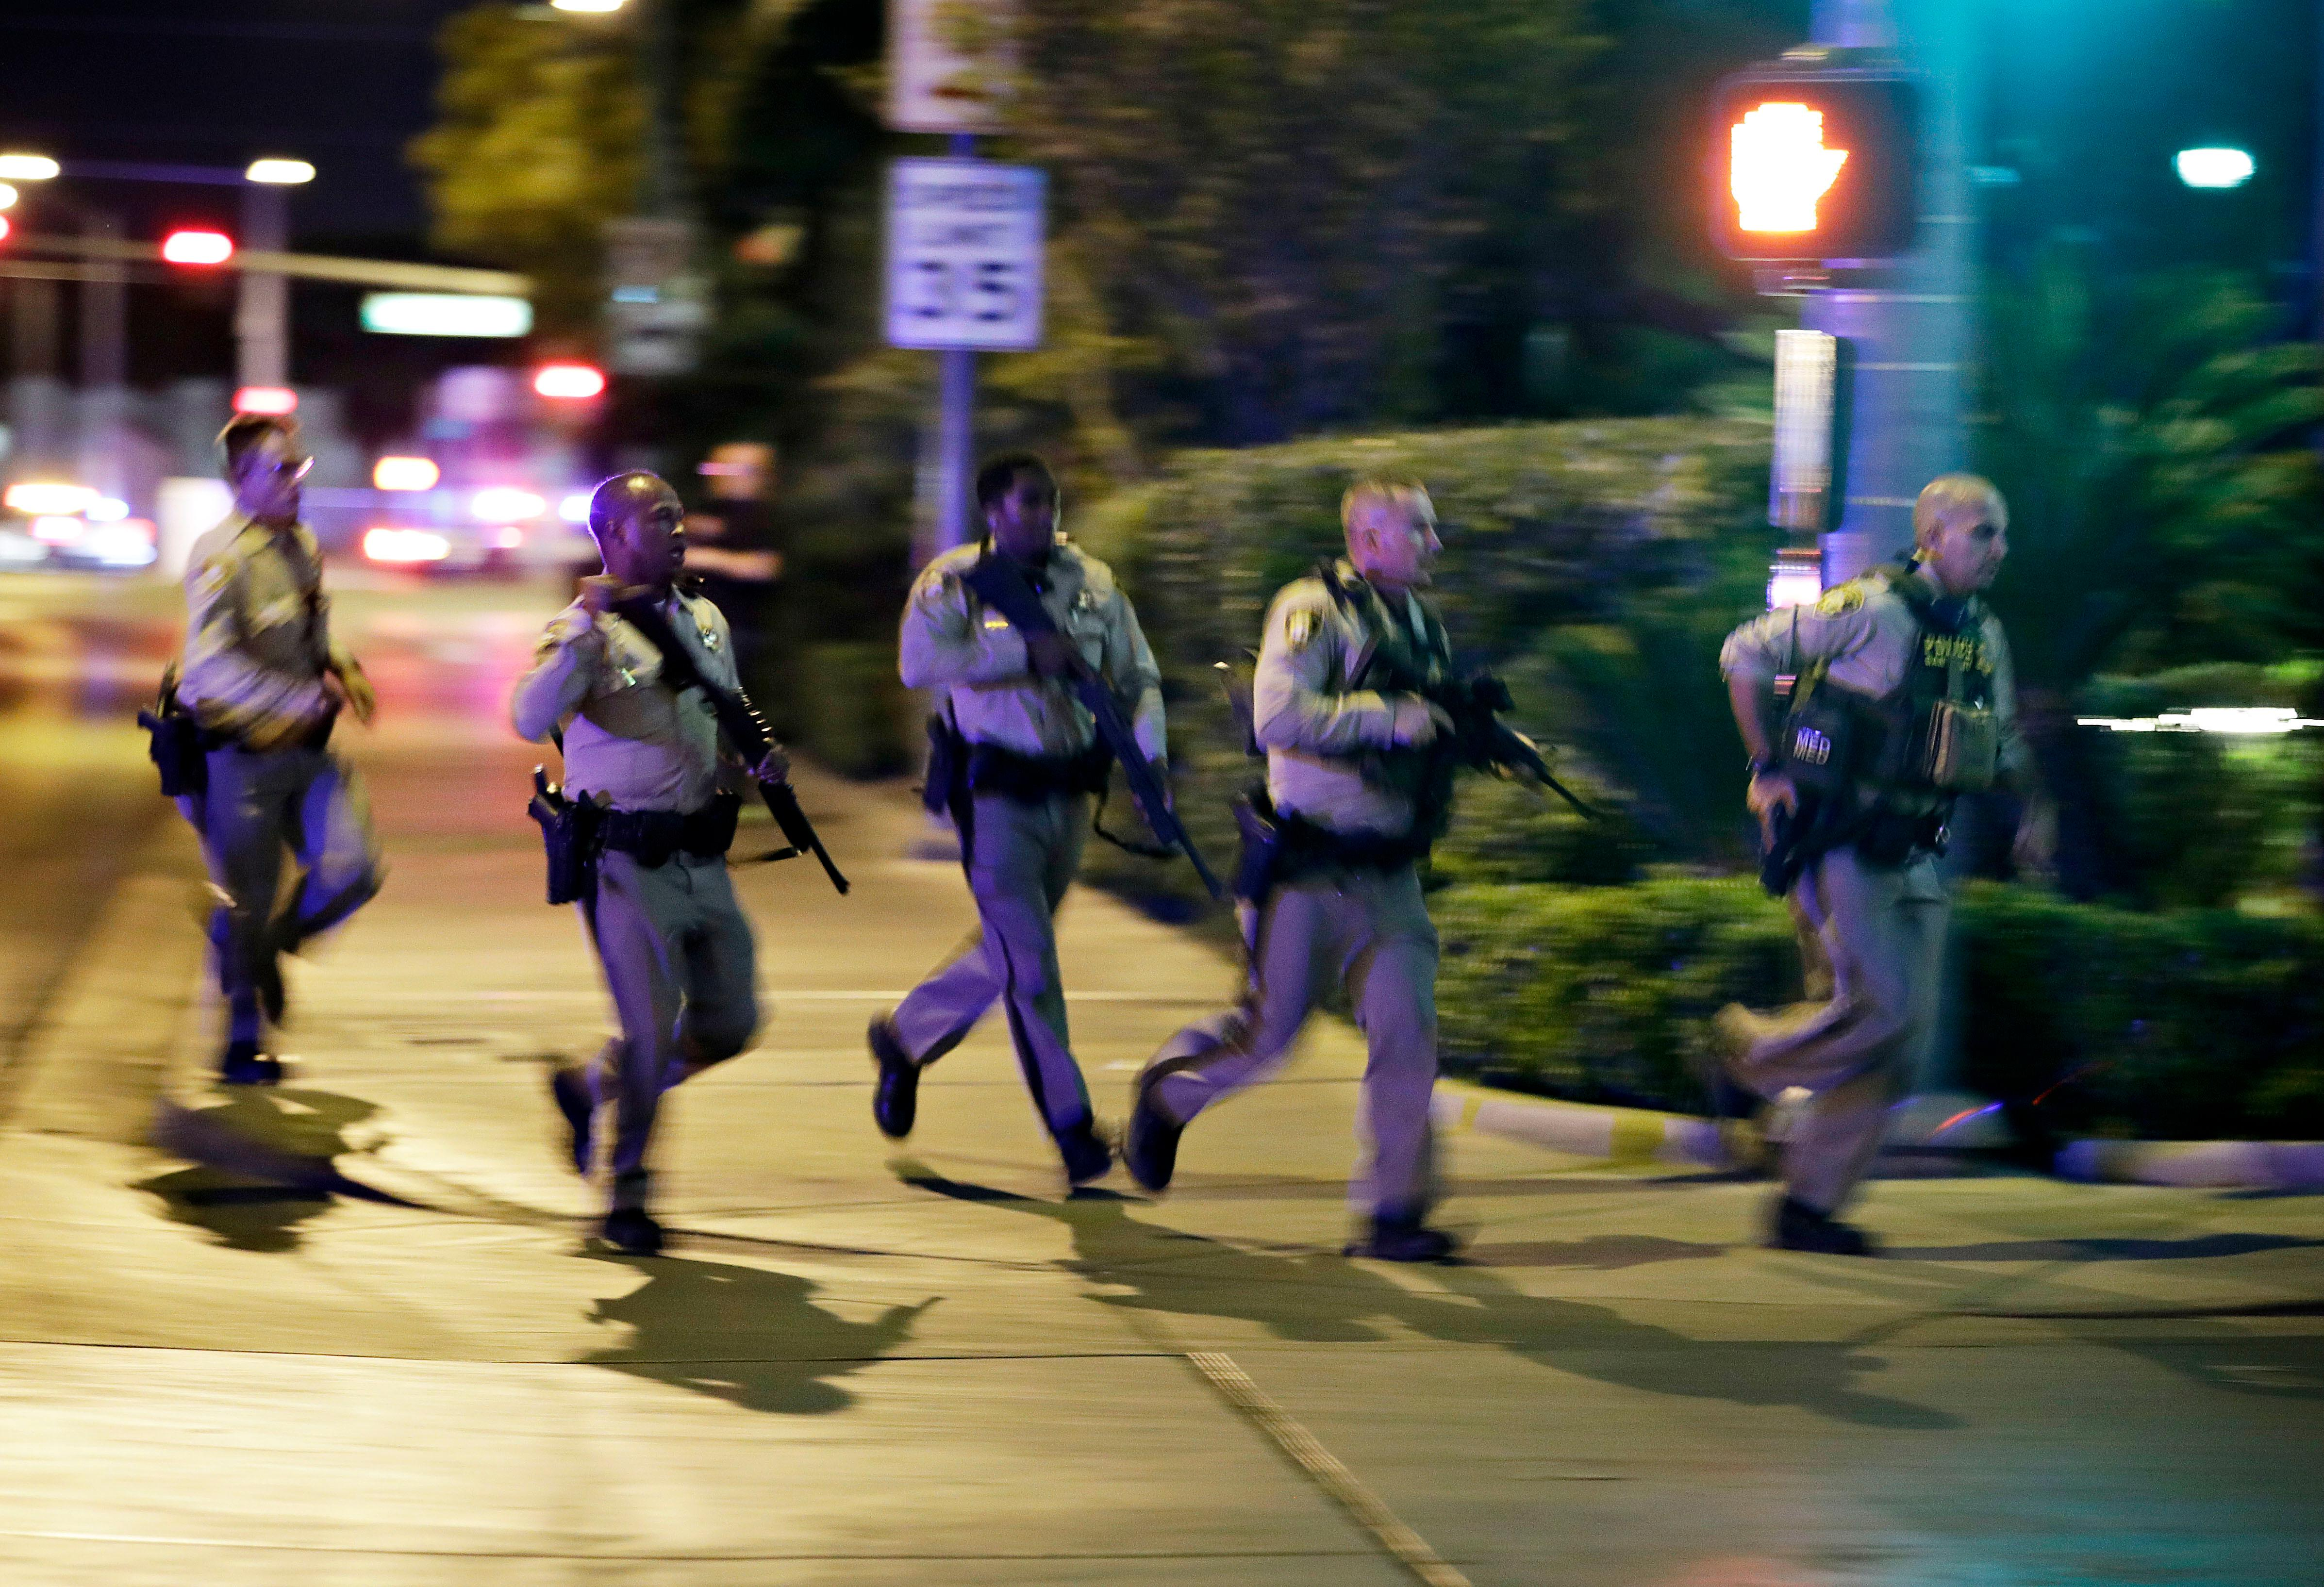 Police run to cover at the scene of a shooting near the Mandalay Bay resort and casino on the Las Vegas Strip, Sunday, Oct. 1, 2017, in Las Vegas. Multiple victims were being transported to hospitals after a shooting late Sunday at a music festival on the Las Vegas Strip. (AP Photo/John Locher)